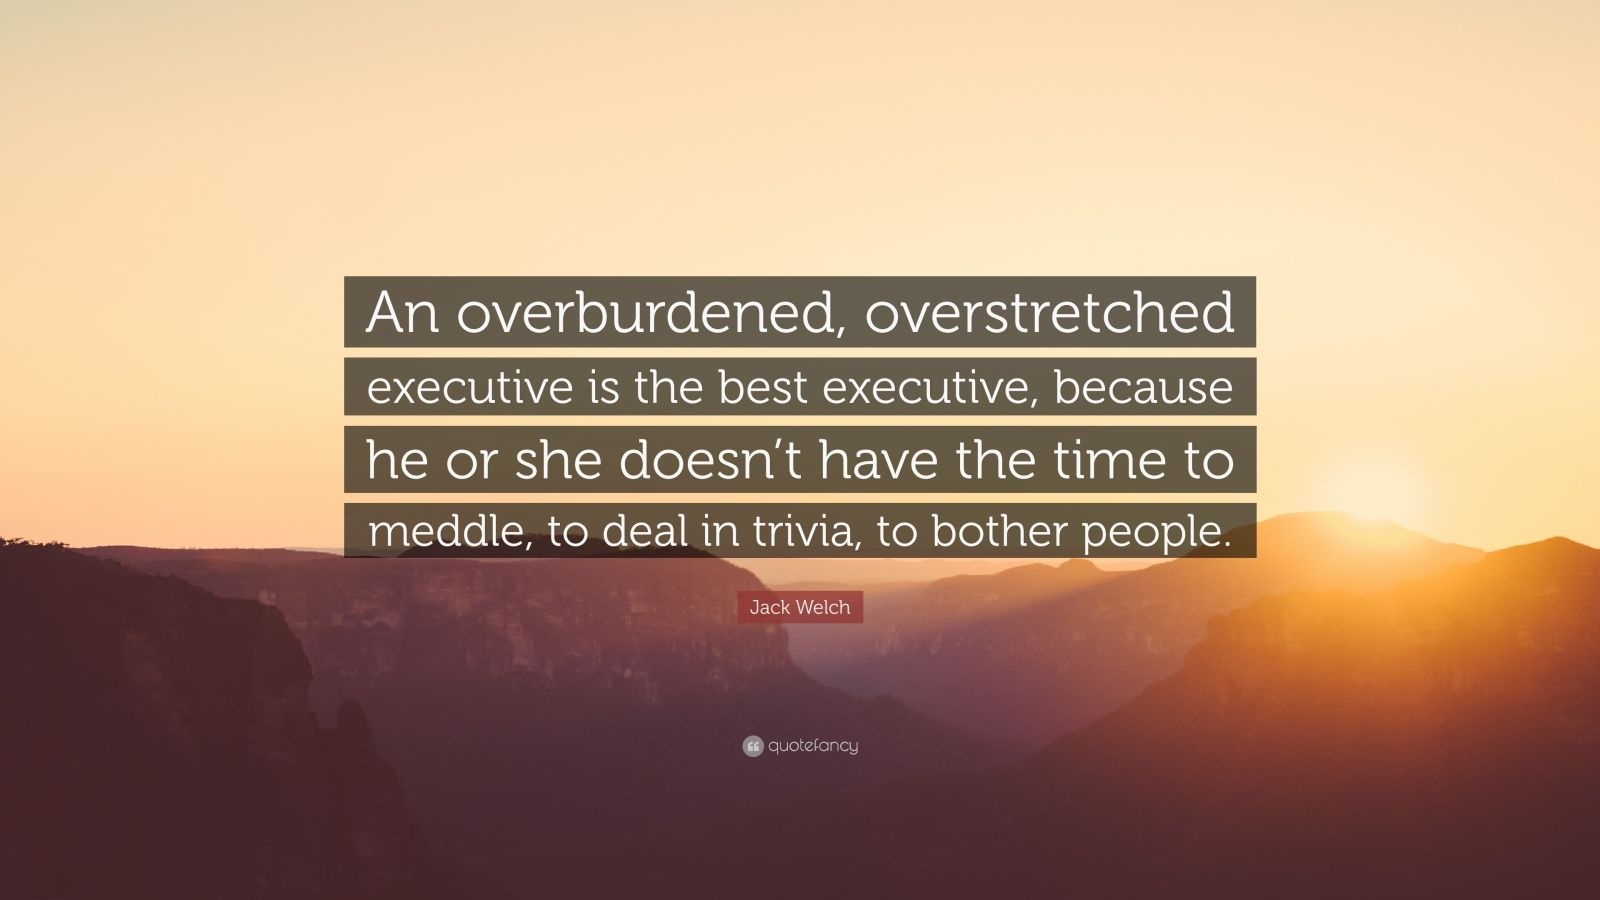 """Jack Welch Quote: """"An overburdened, overstretched executive is the best executive, because he or she doesn't have the time to meddle, to deal in trivia, to bother people."""""""